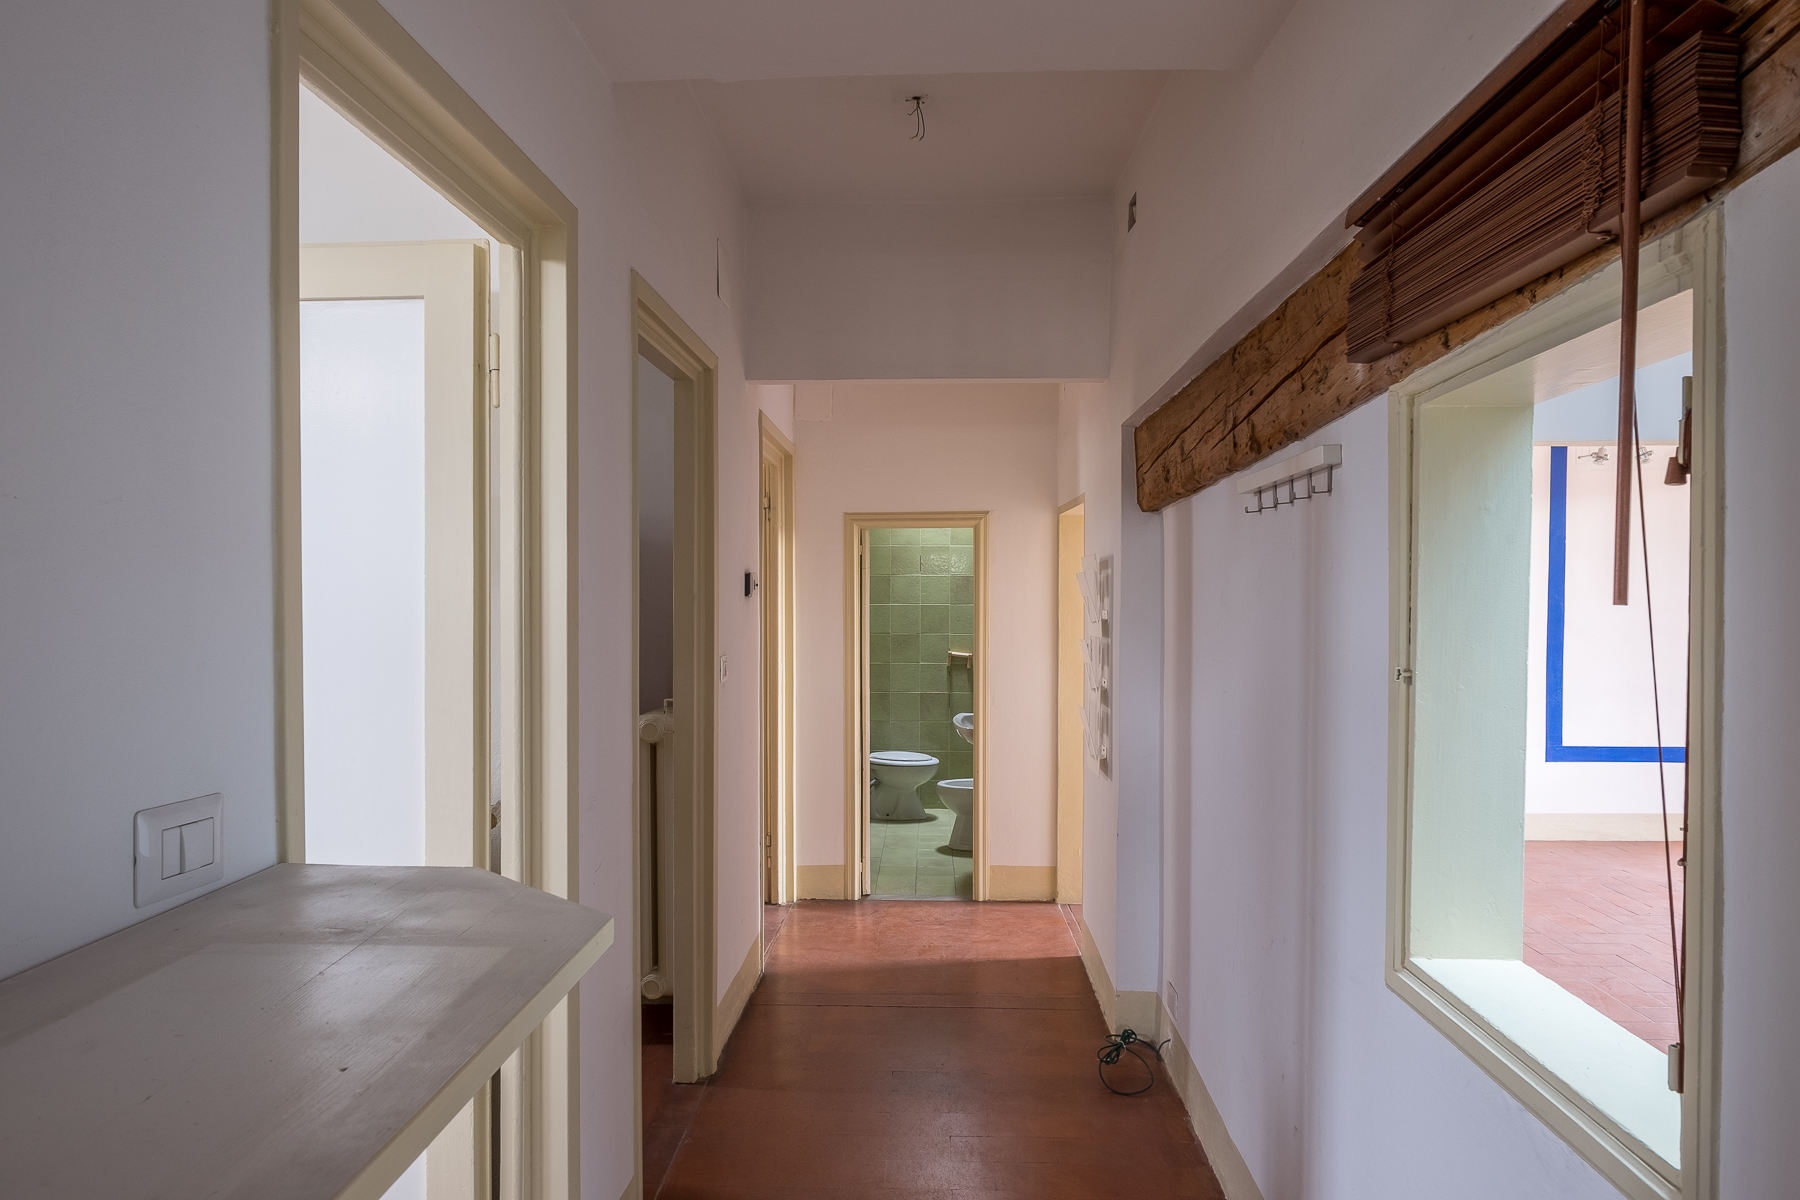 Additional photo for property listing at Luminous apartment with magnificient views in the center of Florence Corso Tintori Firenze, Florence 50100 Italia